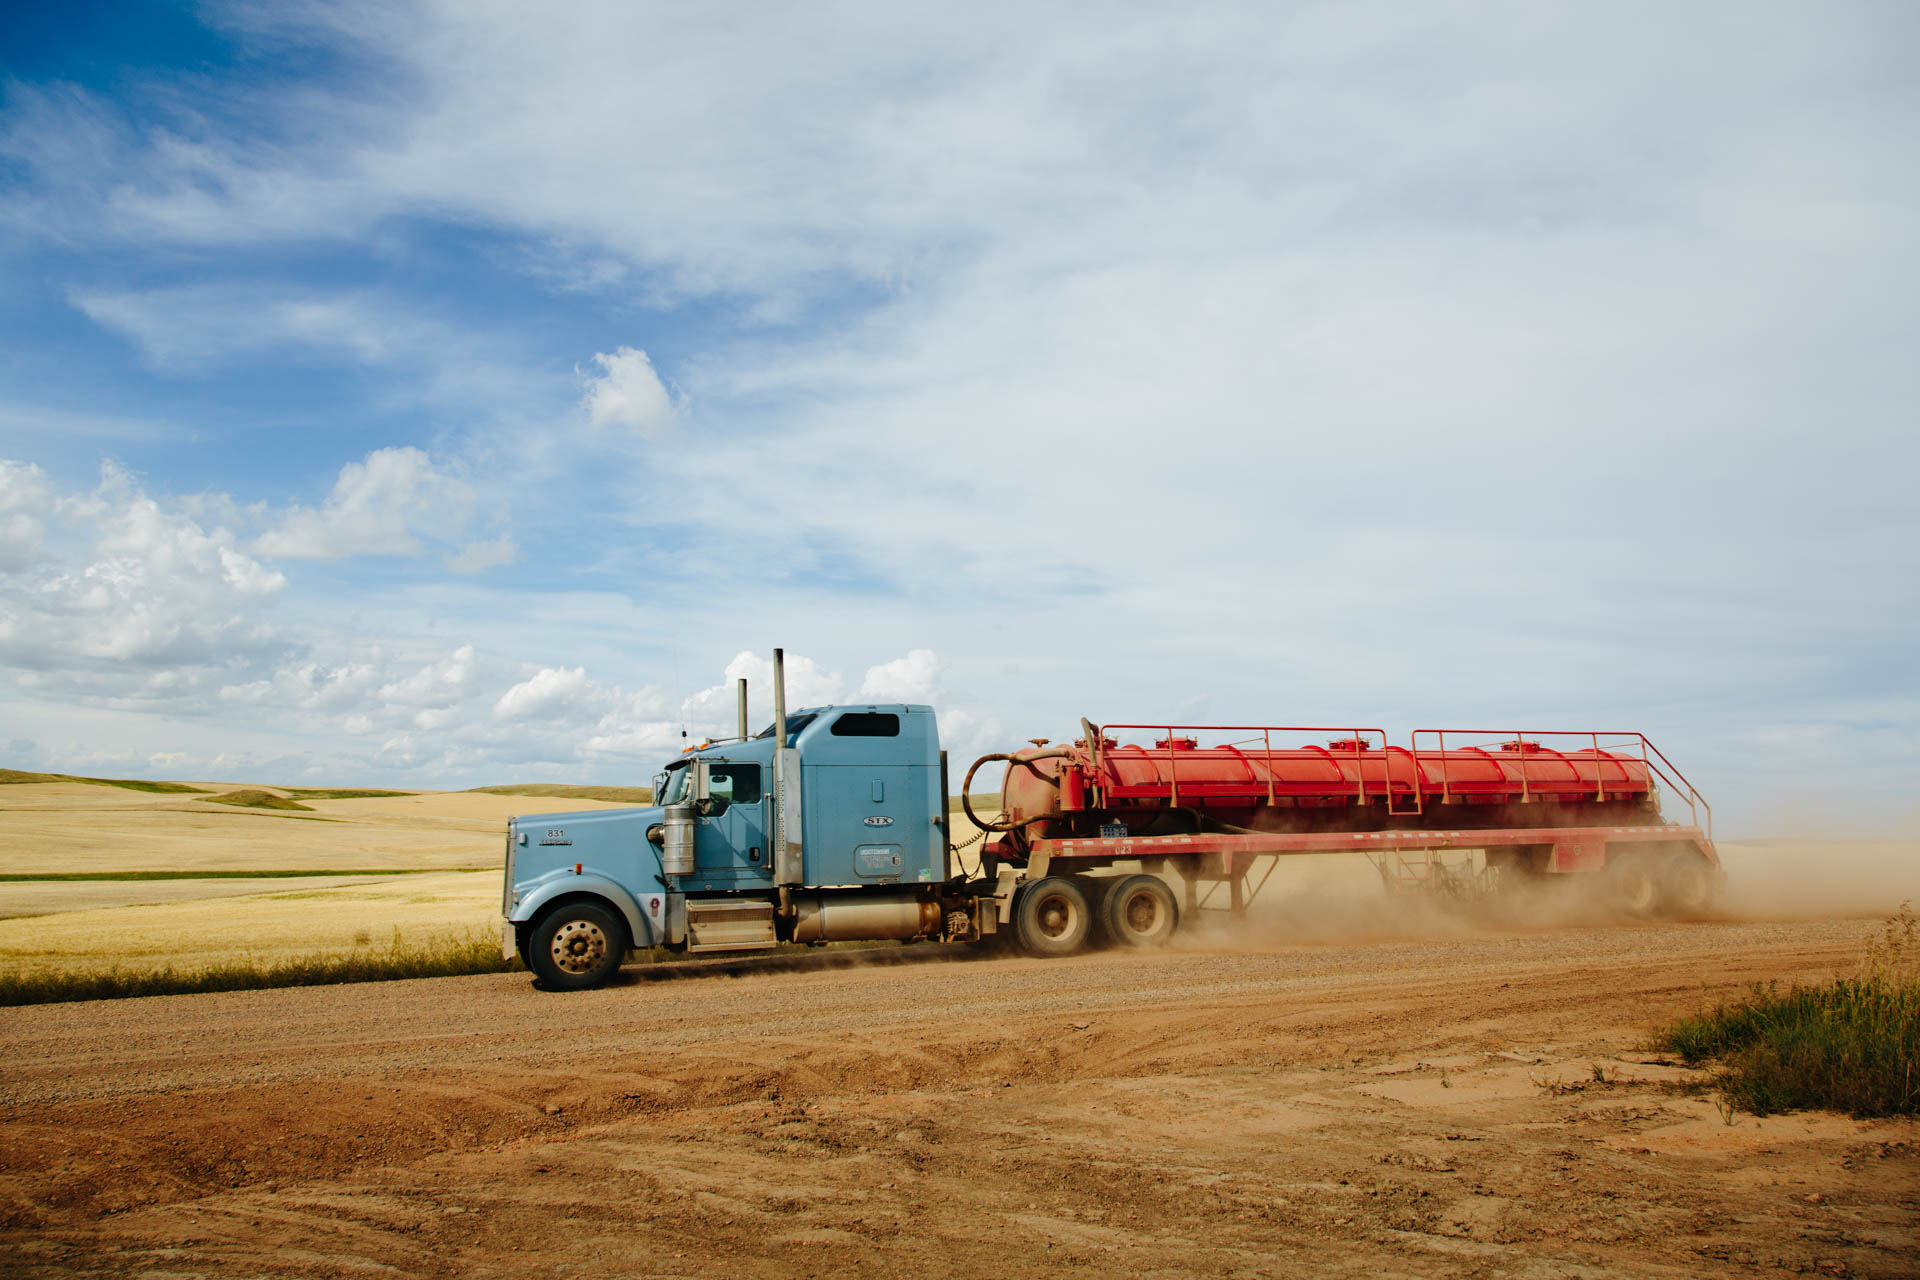 water-semi-kicks-up-dust-dirt-road-red-tank